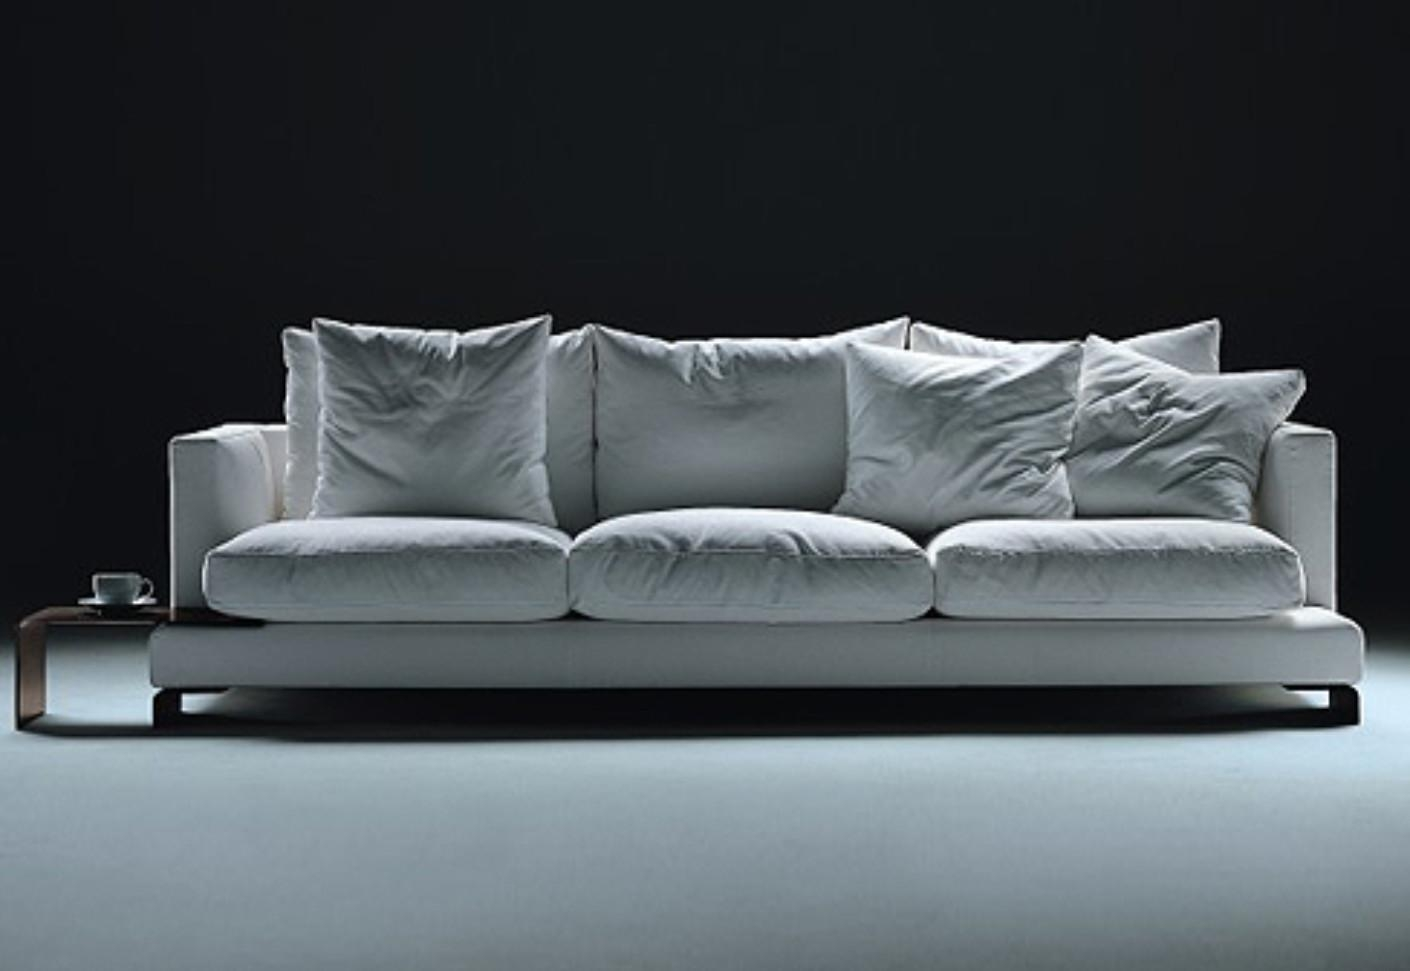 Long Island Sofaflexform | Stylepark With Regard To Flexform Sofas (Image 13 of 20)